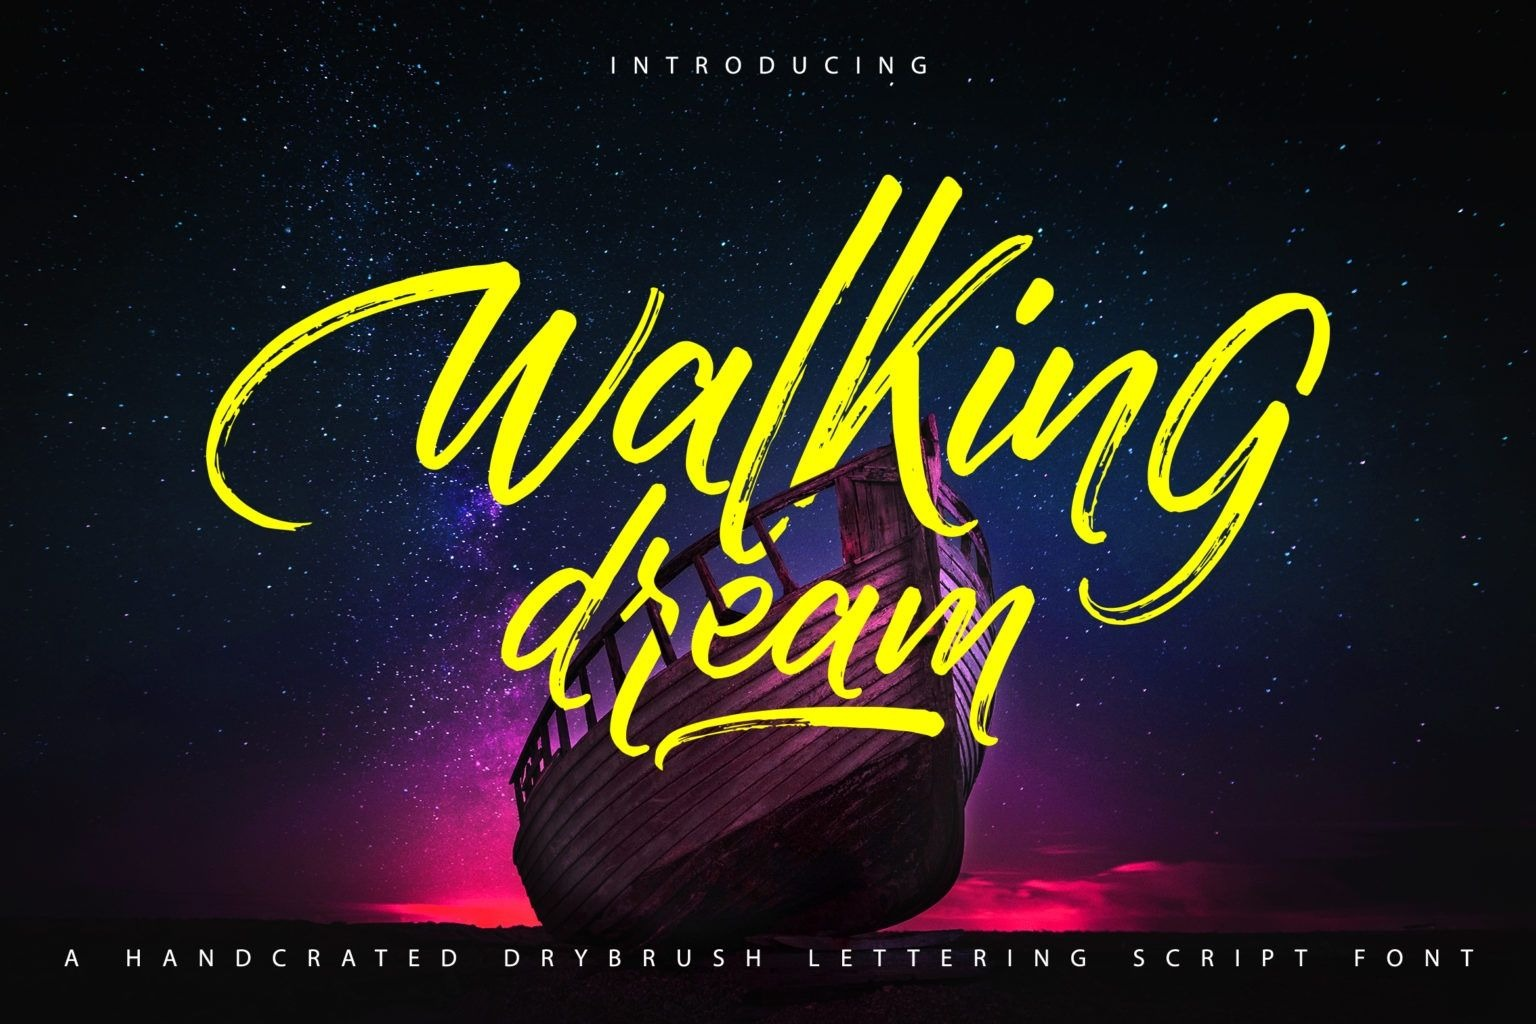 Walking Dream A Handcrafted Drybrush Lettering Font-1